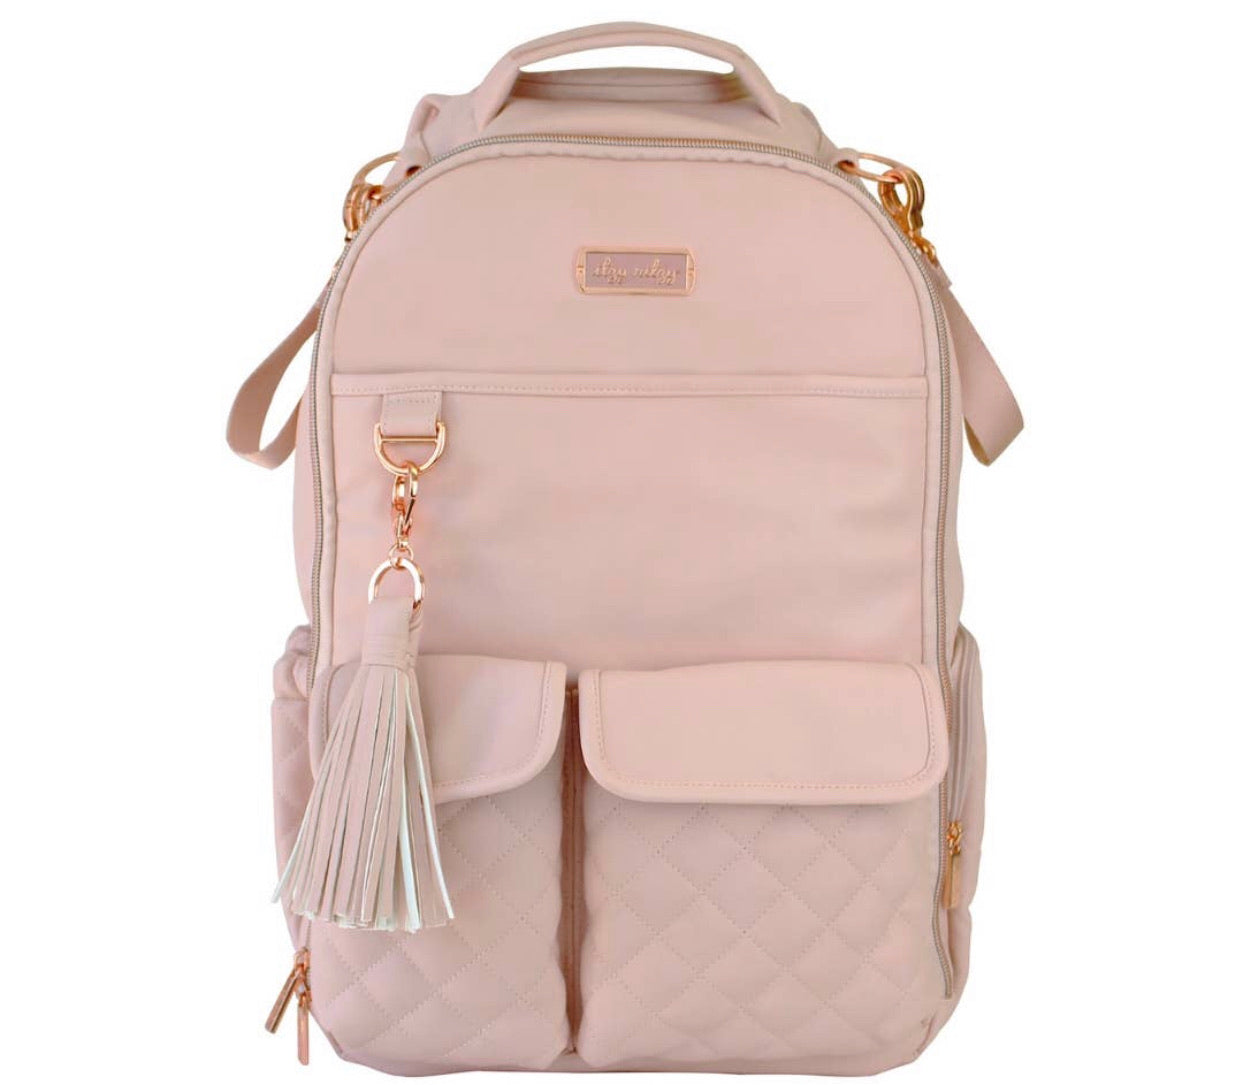 Blush Crush Boss Diaper Bag Backpack